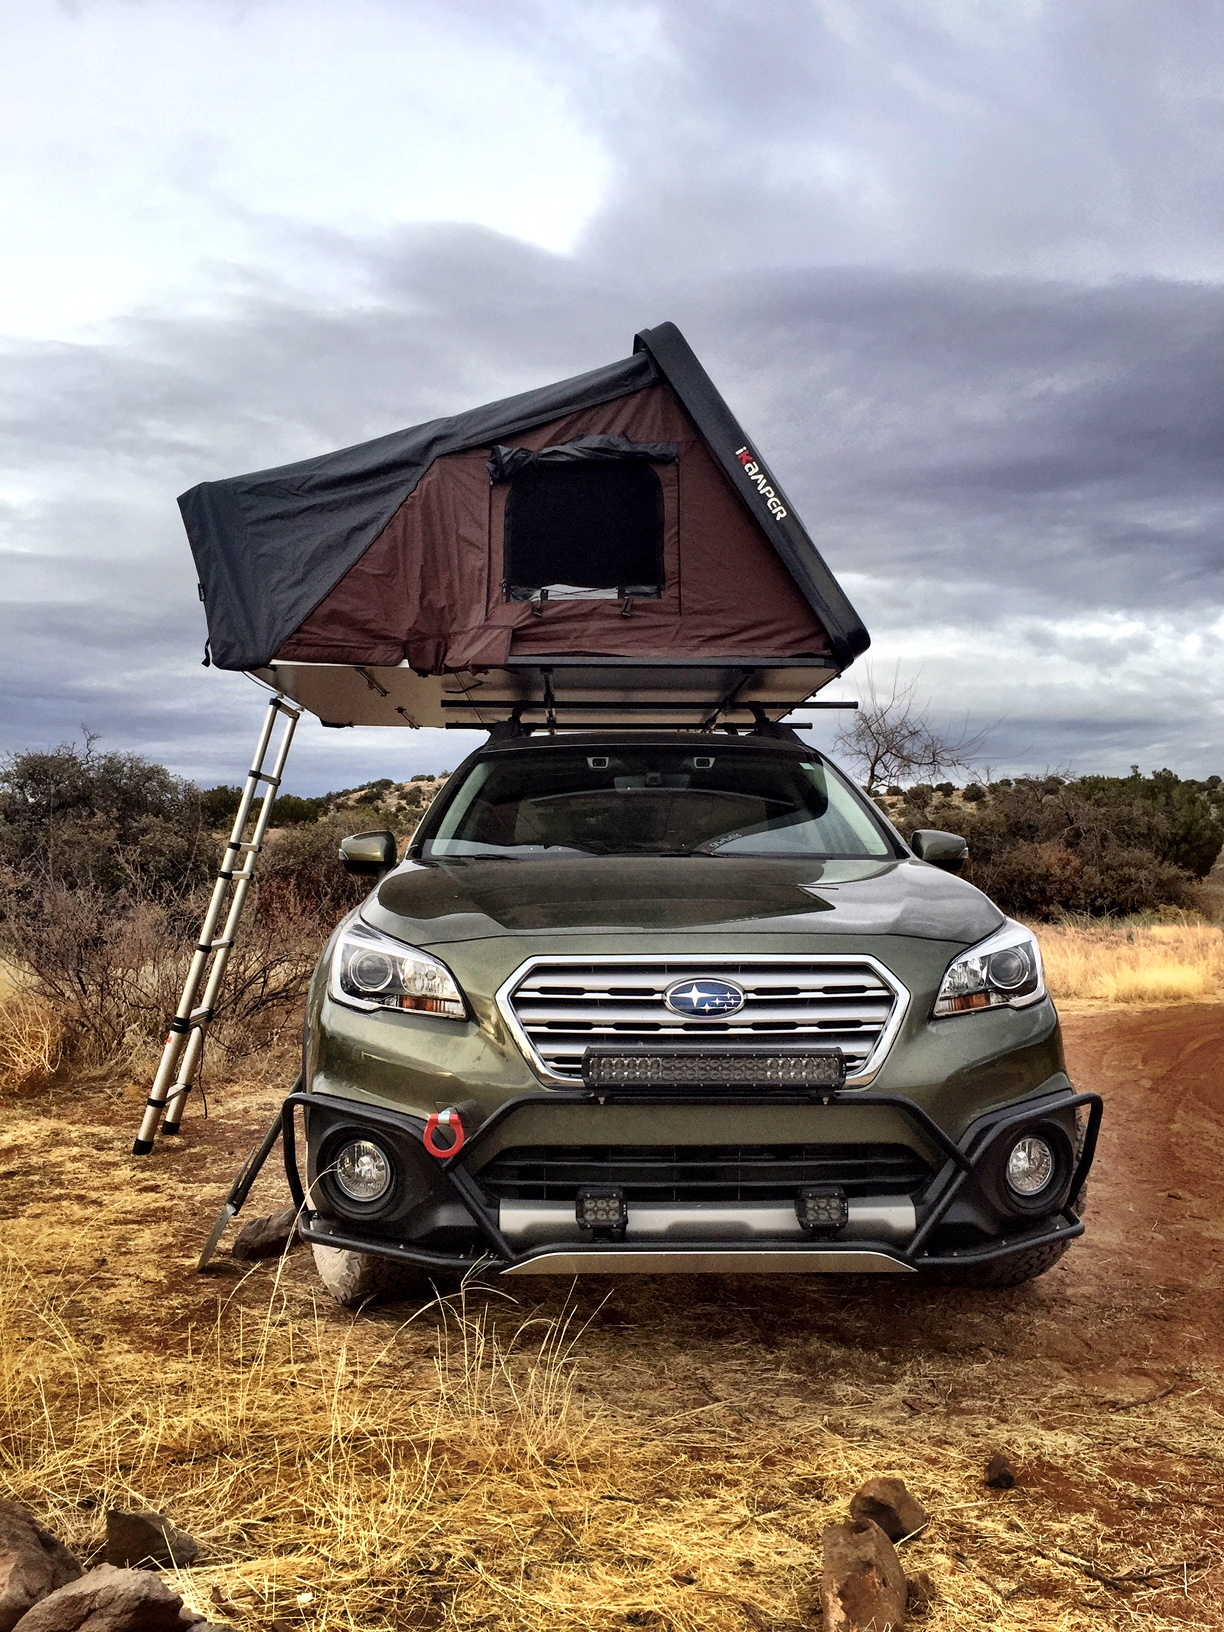 2017 4xpedition Subaru Outback 3 6r Overland Road Warrior